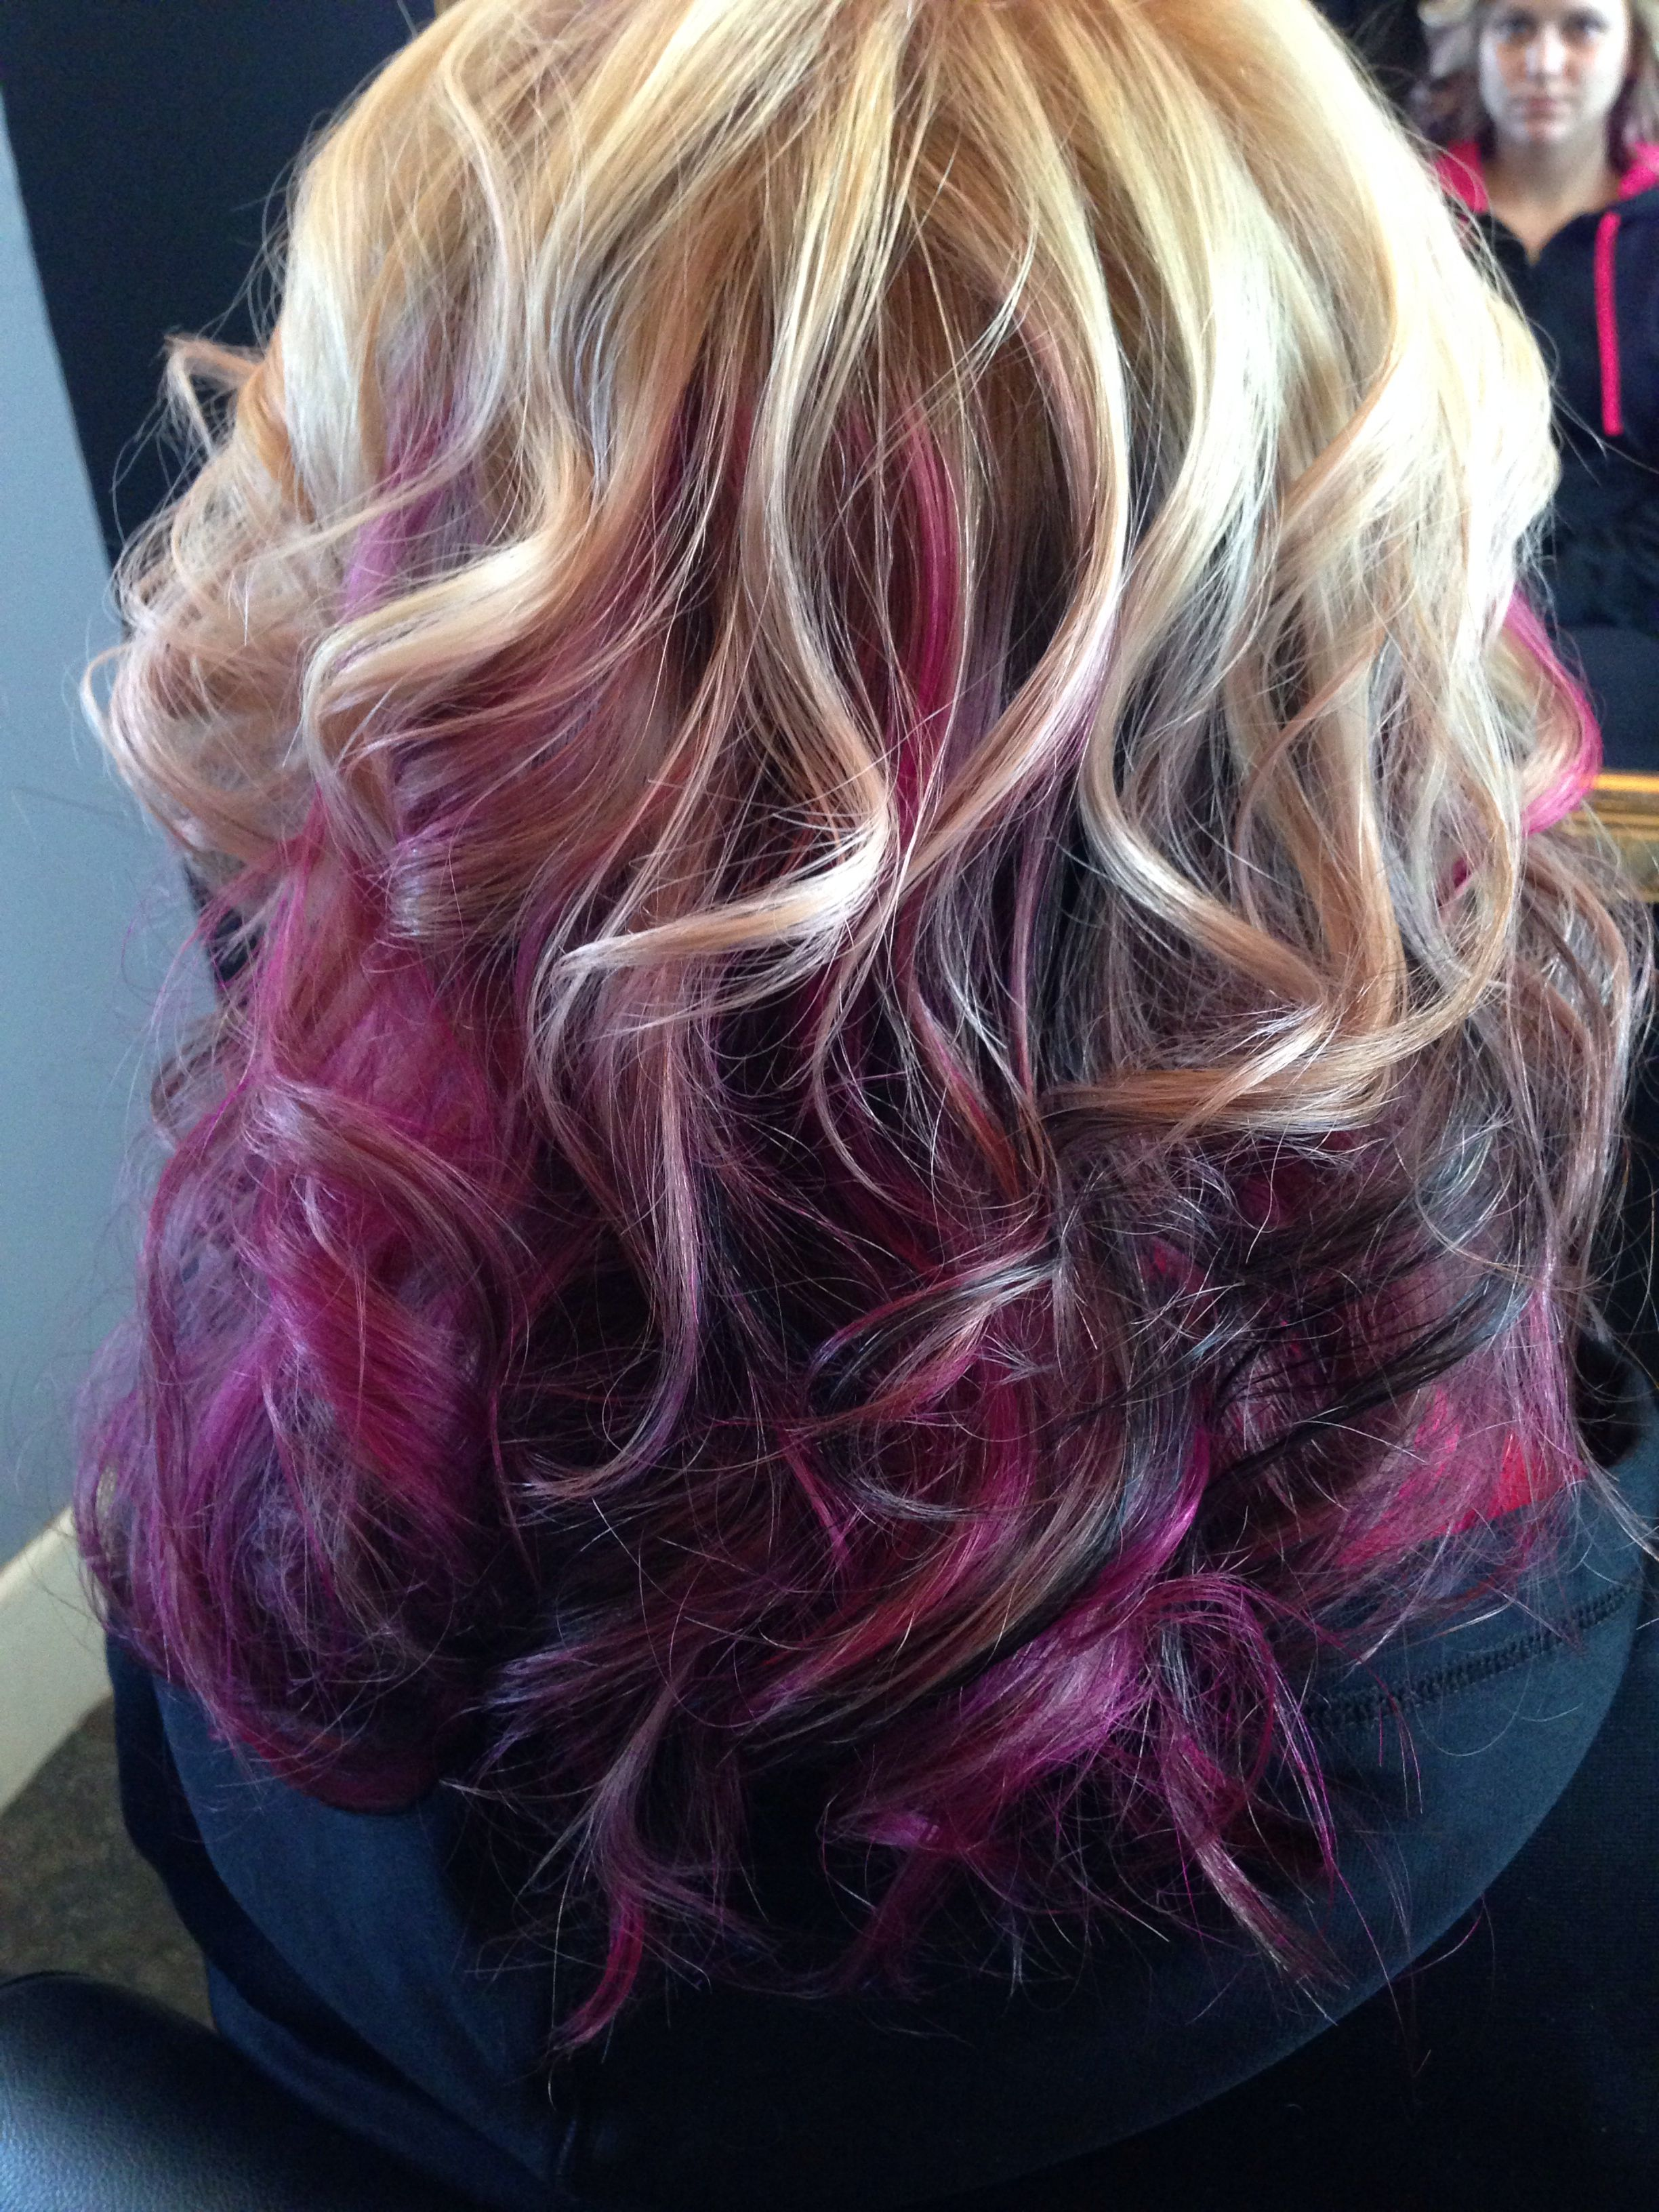 Blonde with black and pink highlights — 15